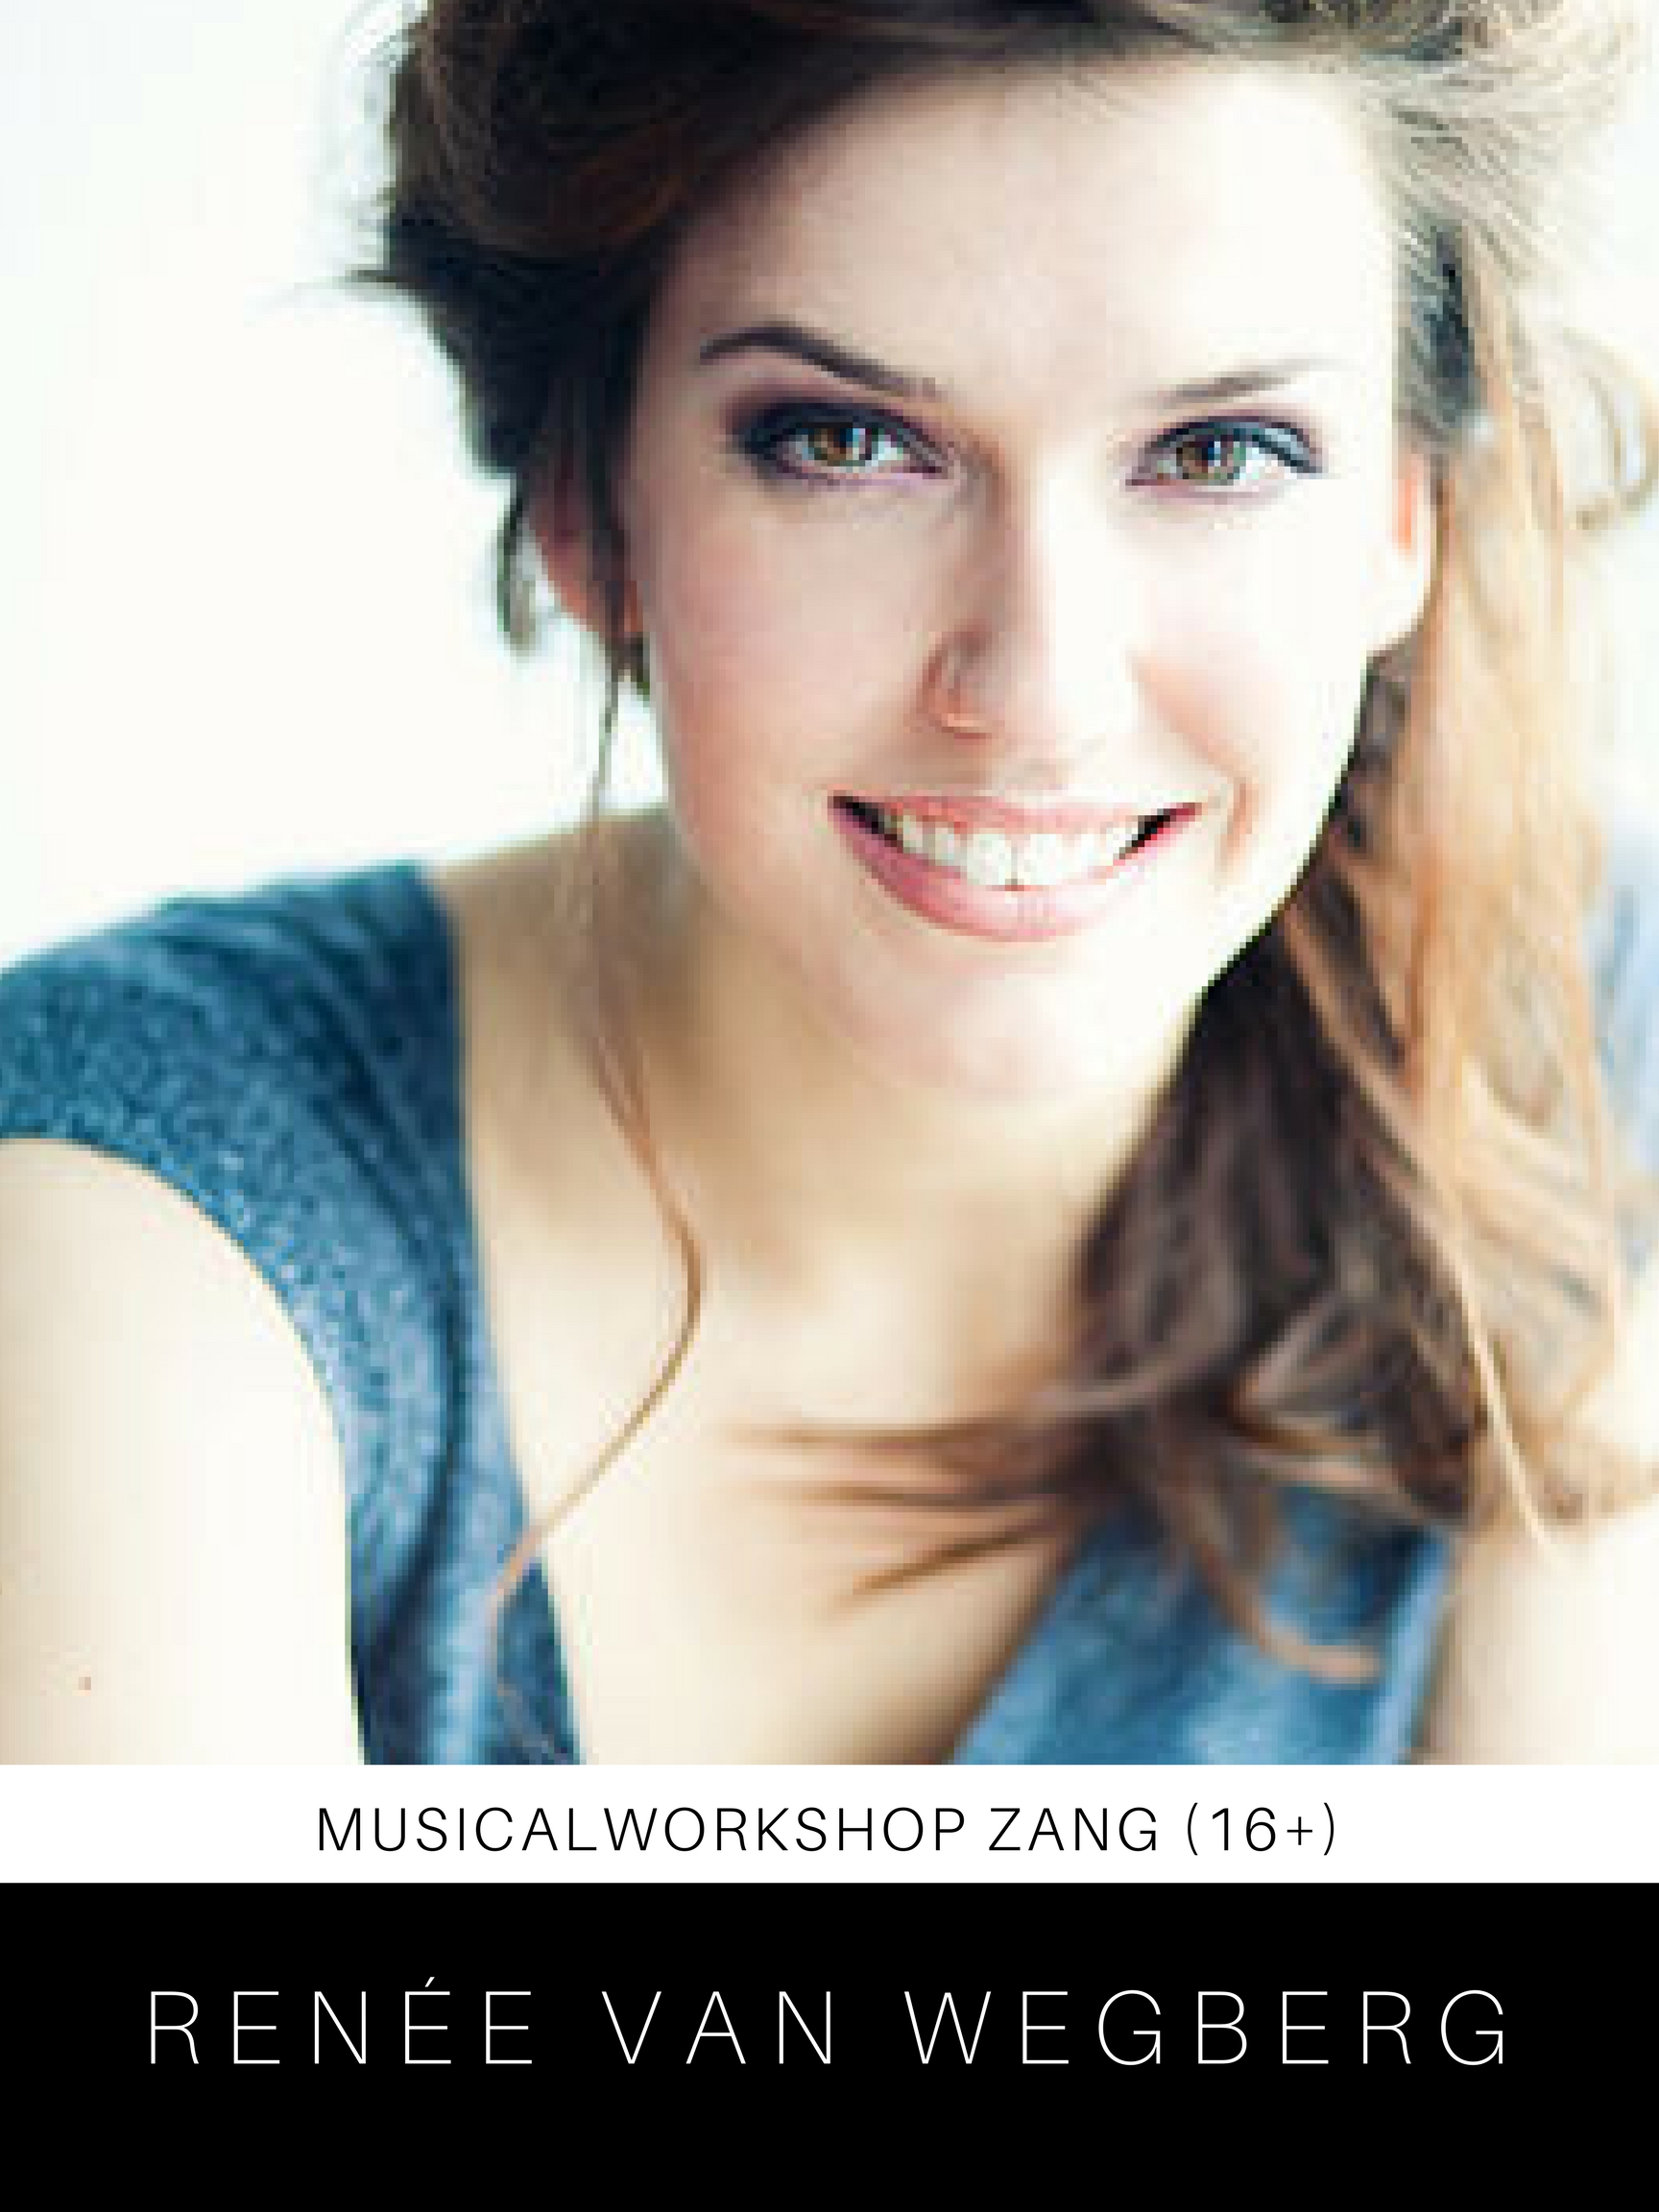 Workshop Zang